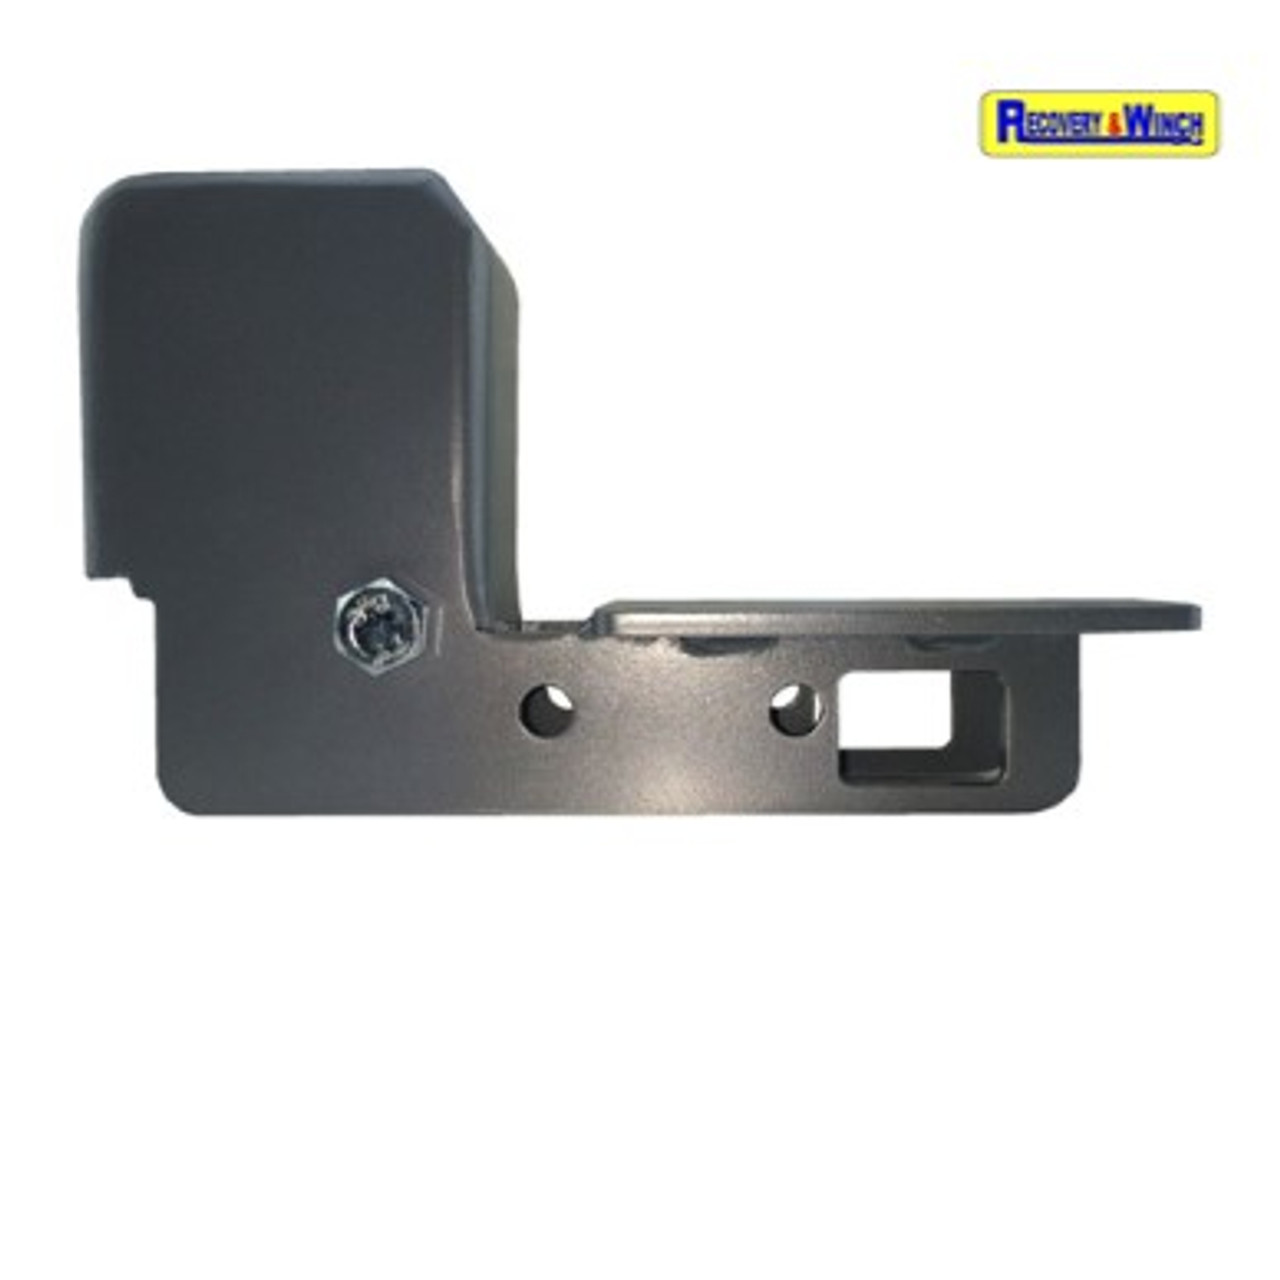 BAK RAK - SMALL TOWBAR MOUNT